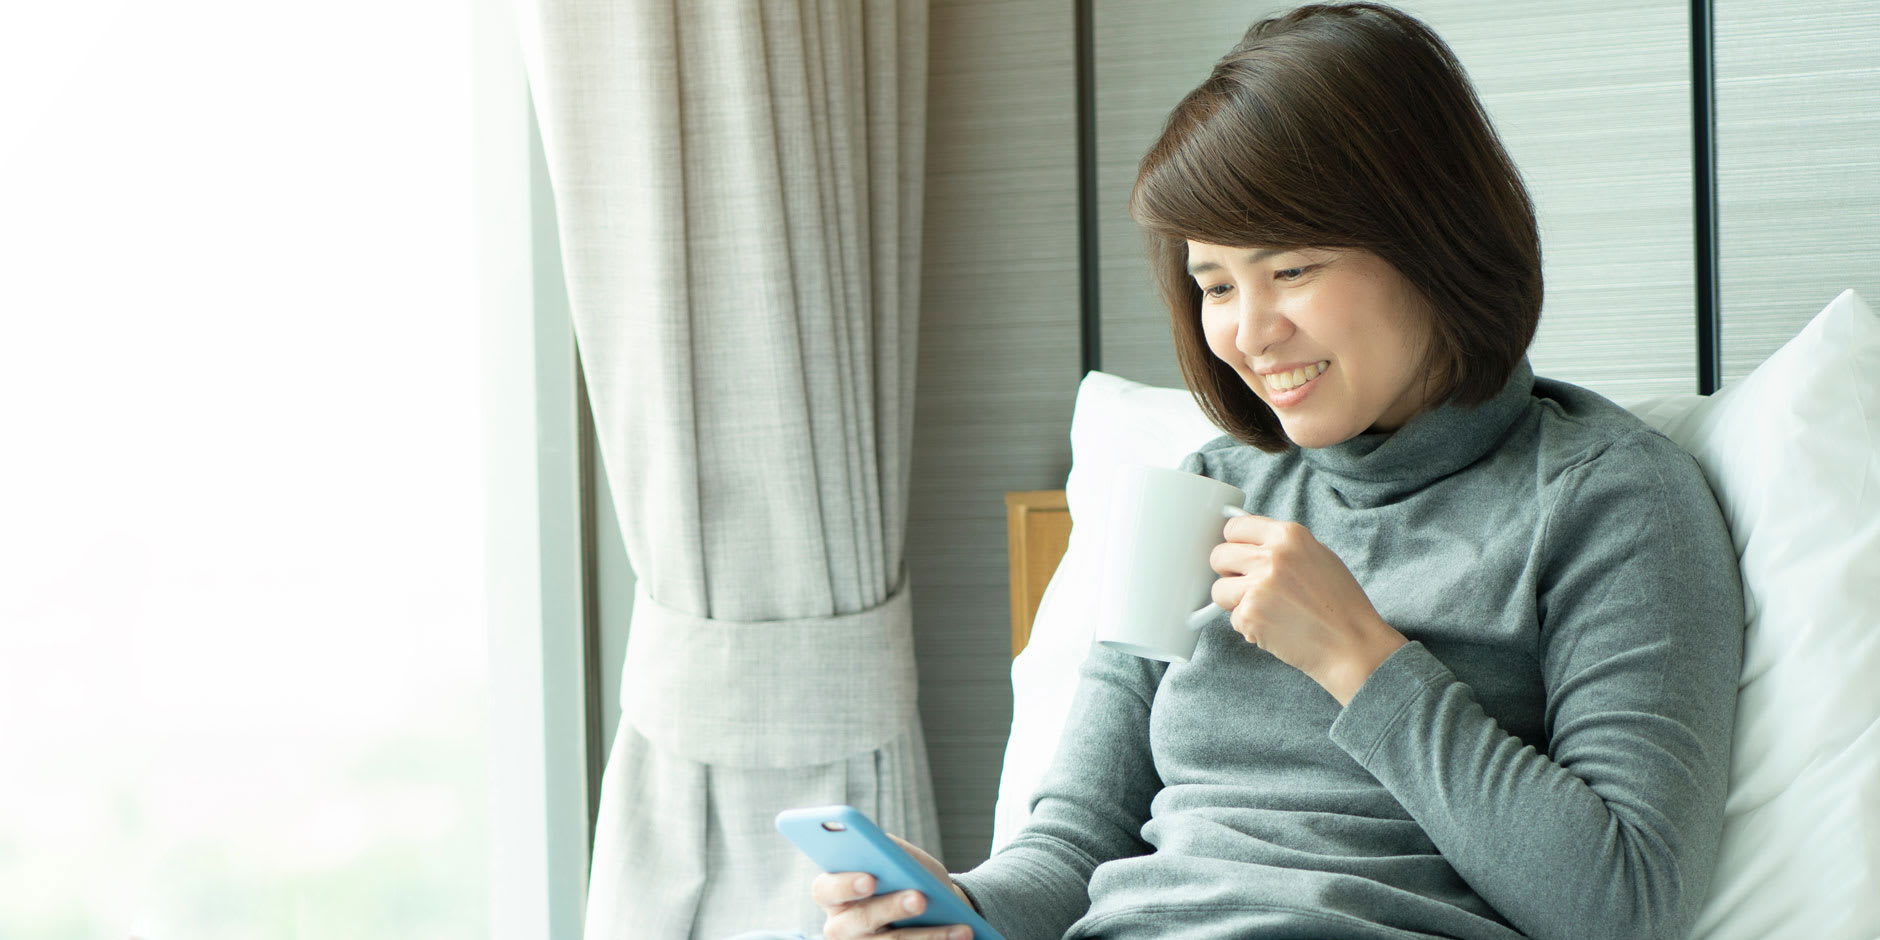 A woman in her 40s is browsing her smartphone for the costs of repairing and relining dentures.